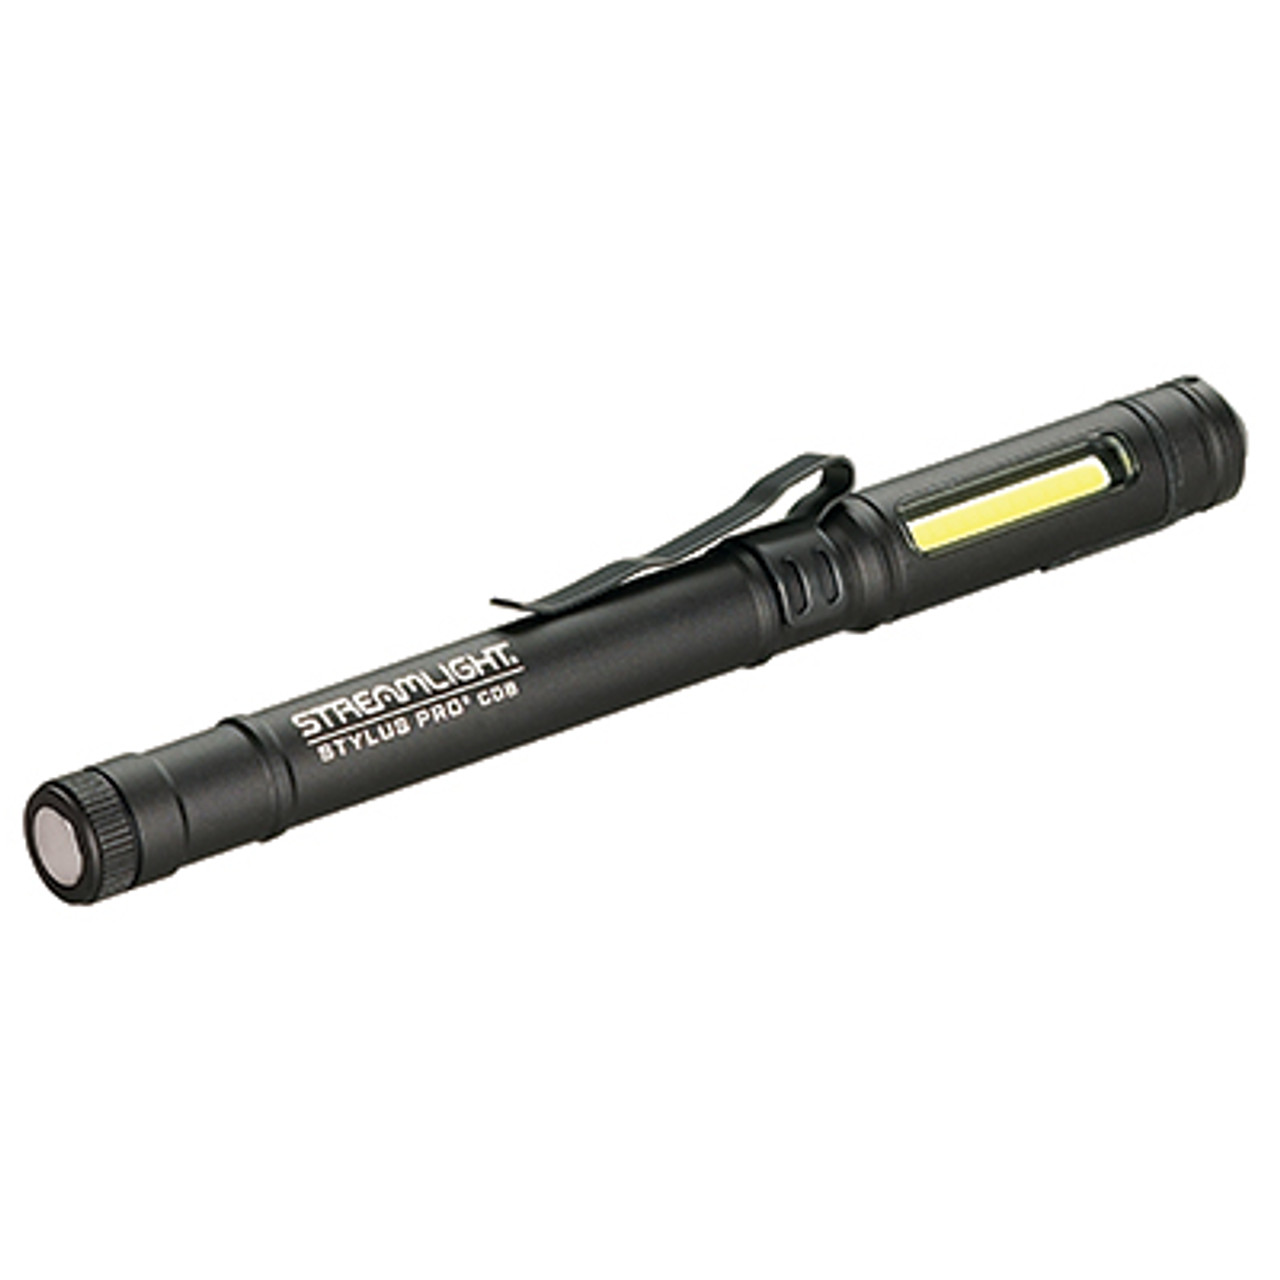 Streamlight 66702 Magnetic Penlight w/Clip, USB Rechargeable-Black